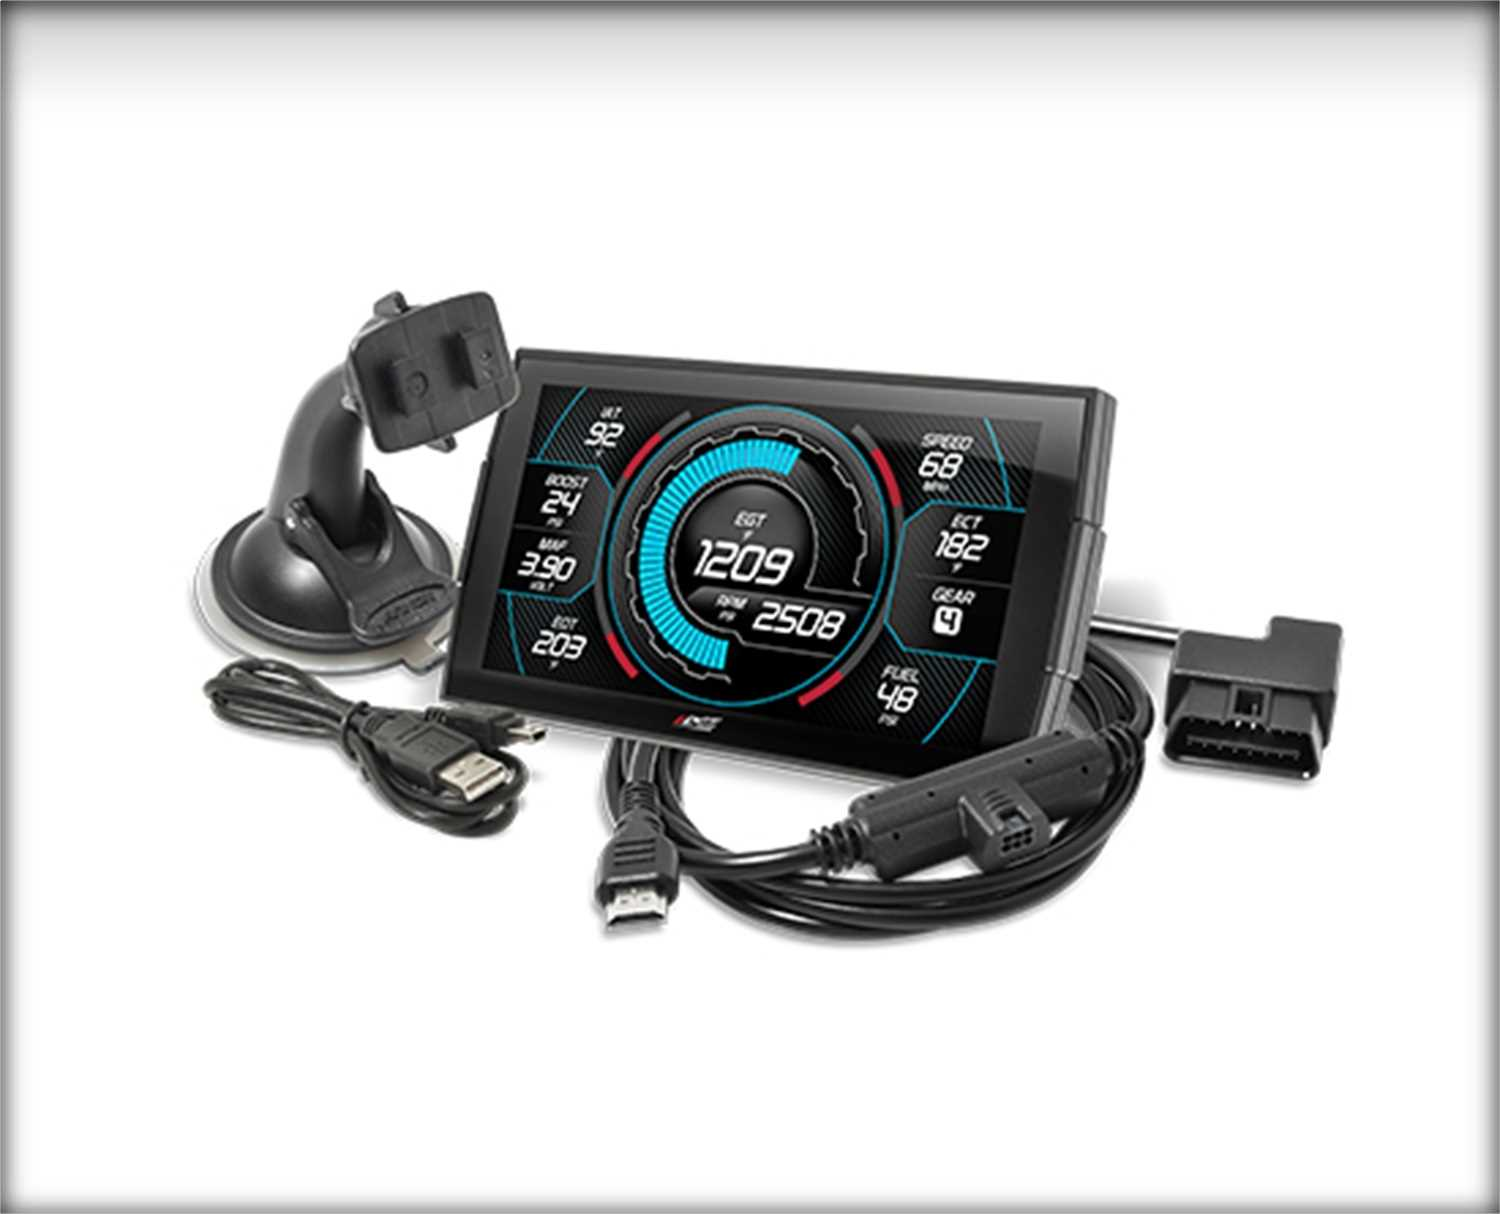 84130-3 Edge Products Insight CTS3 Digital Gauge Monitor